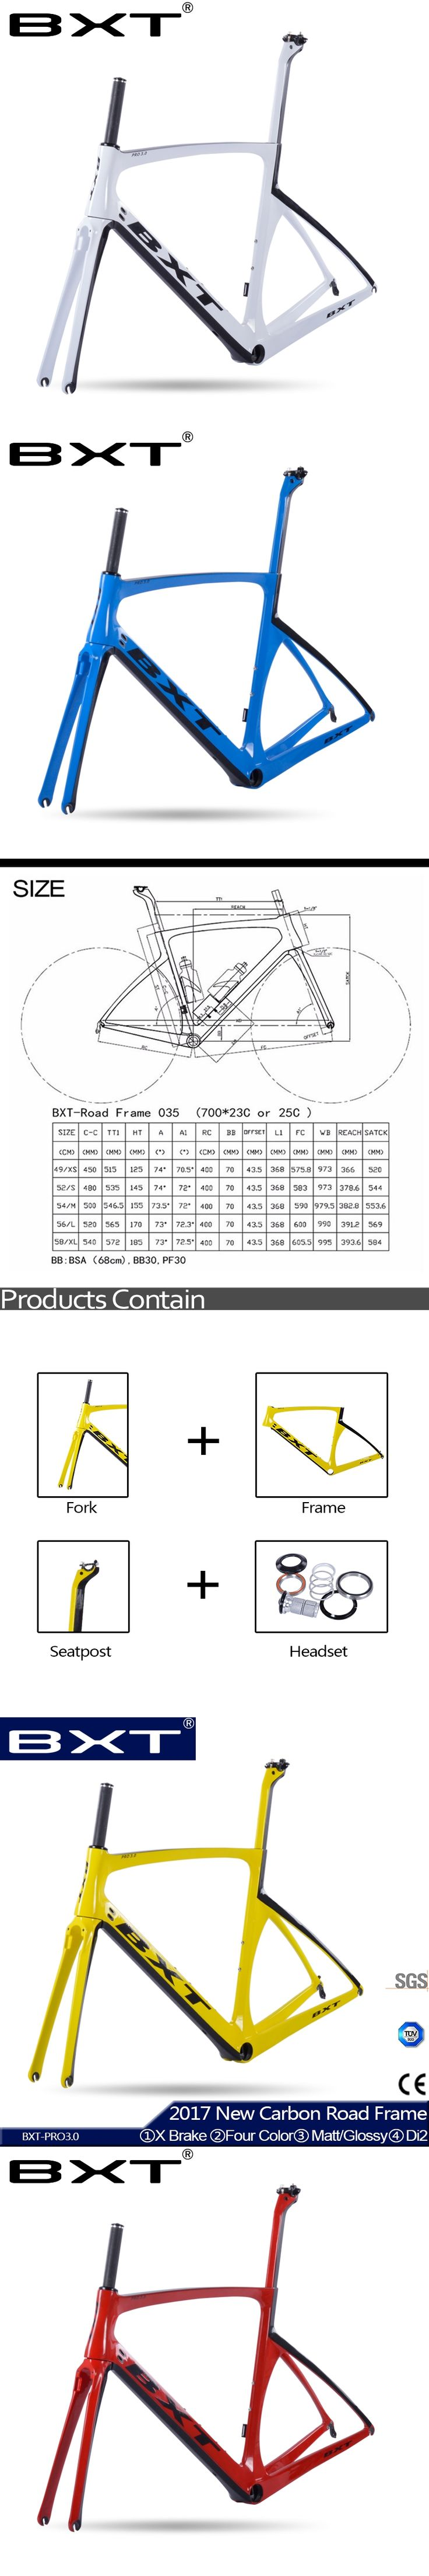 New carbon road bike frame 2017 BXT bicycle road cheap carbon frame Matt/Glossy china Frame carbon road bike parts Free Shipping